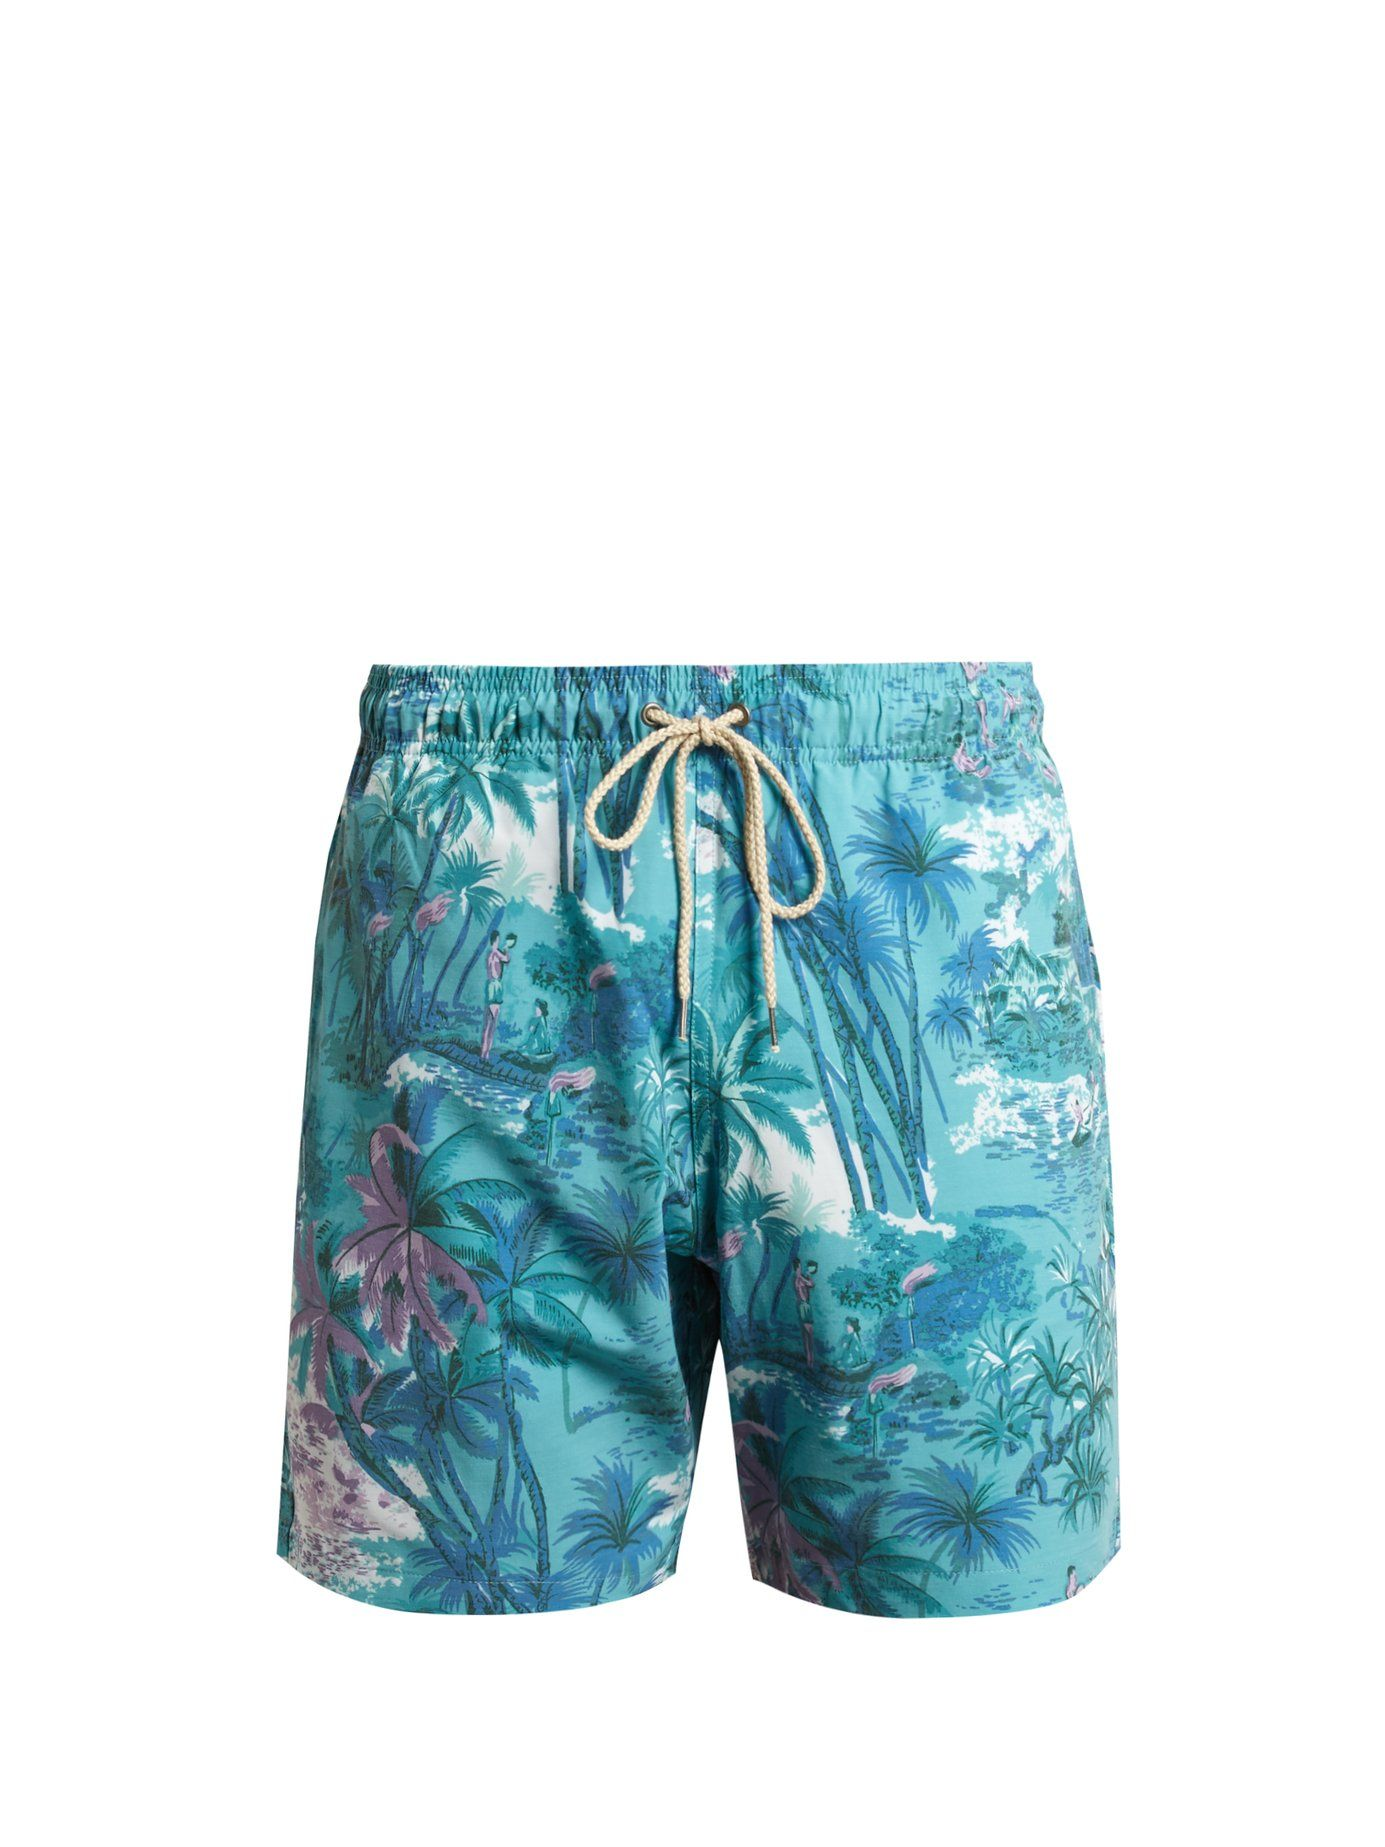 Click Here To Buy Faherty Beacon Swim Shorts At